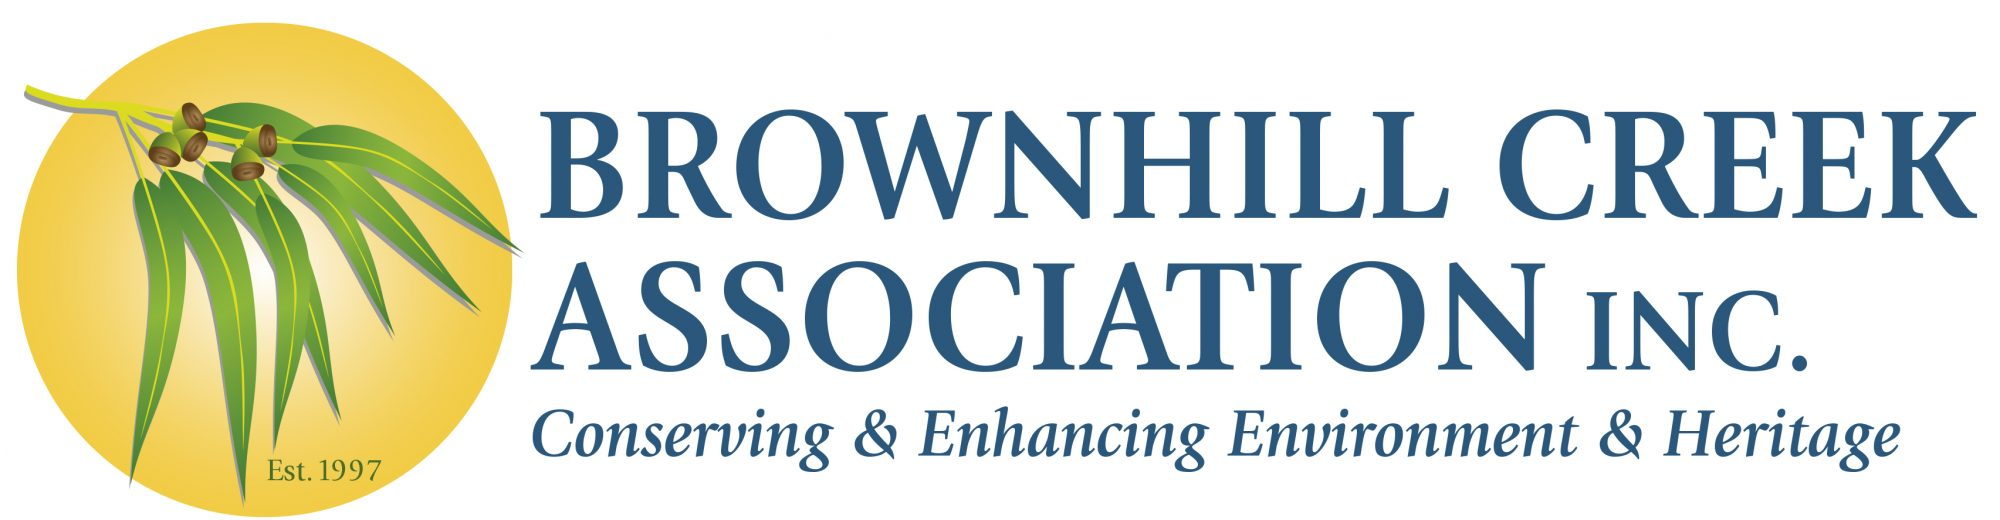 Brownhill Creek Association Incorporated (BCA)